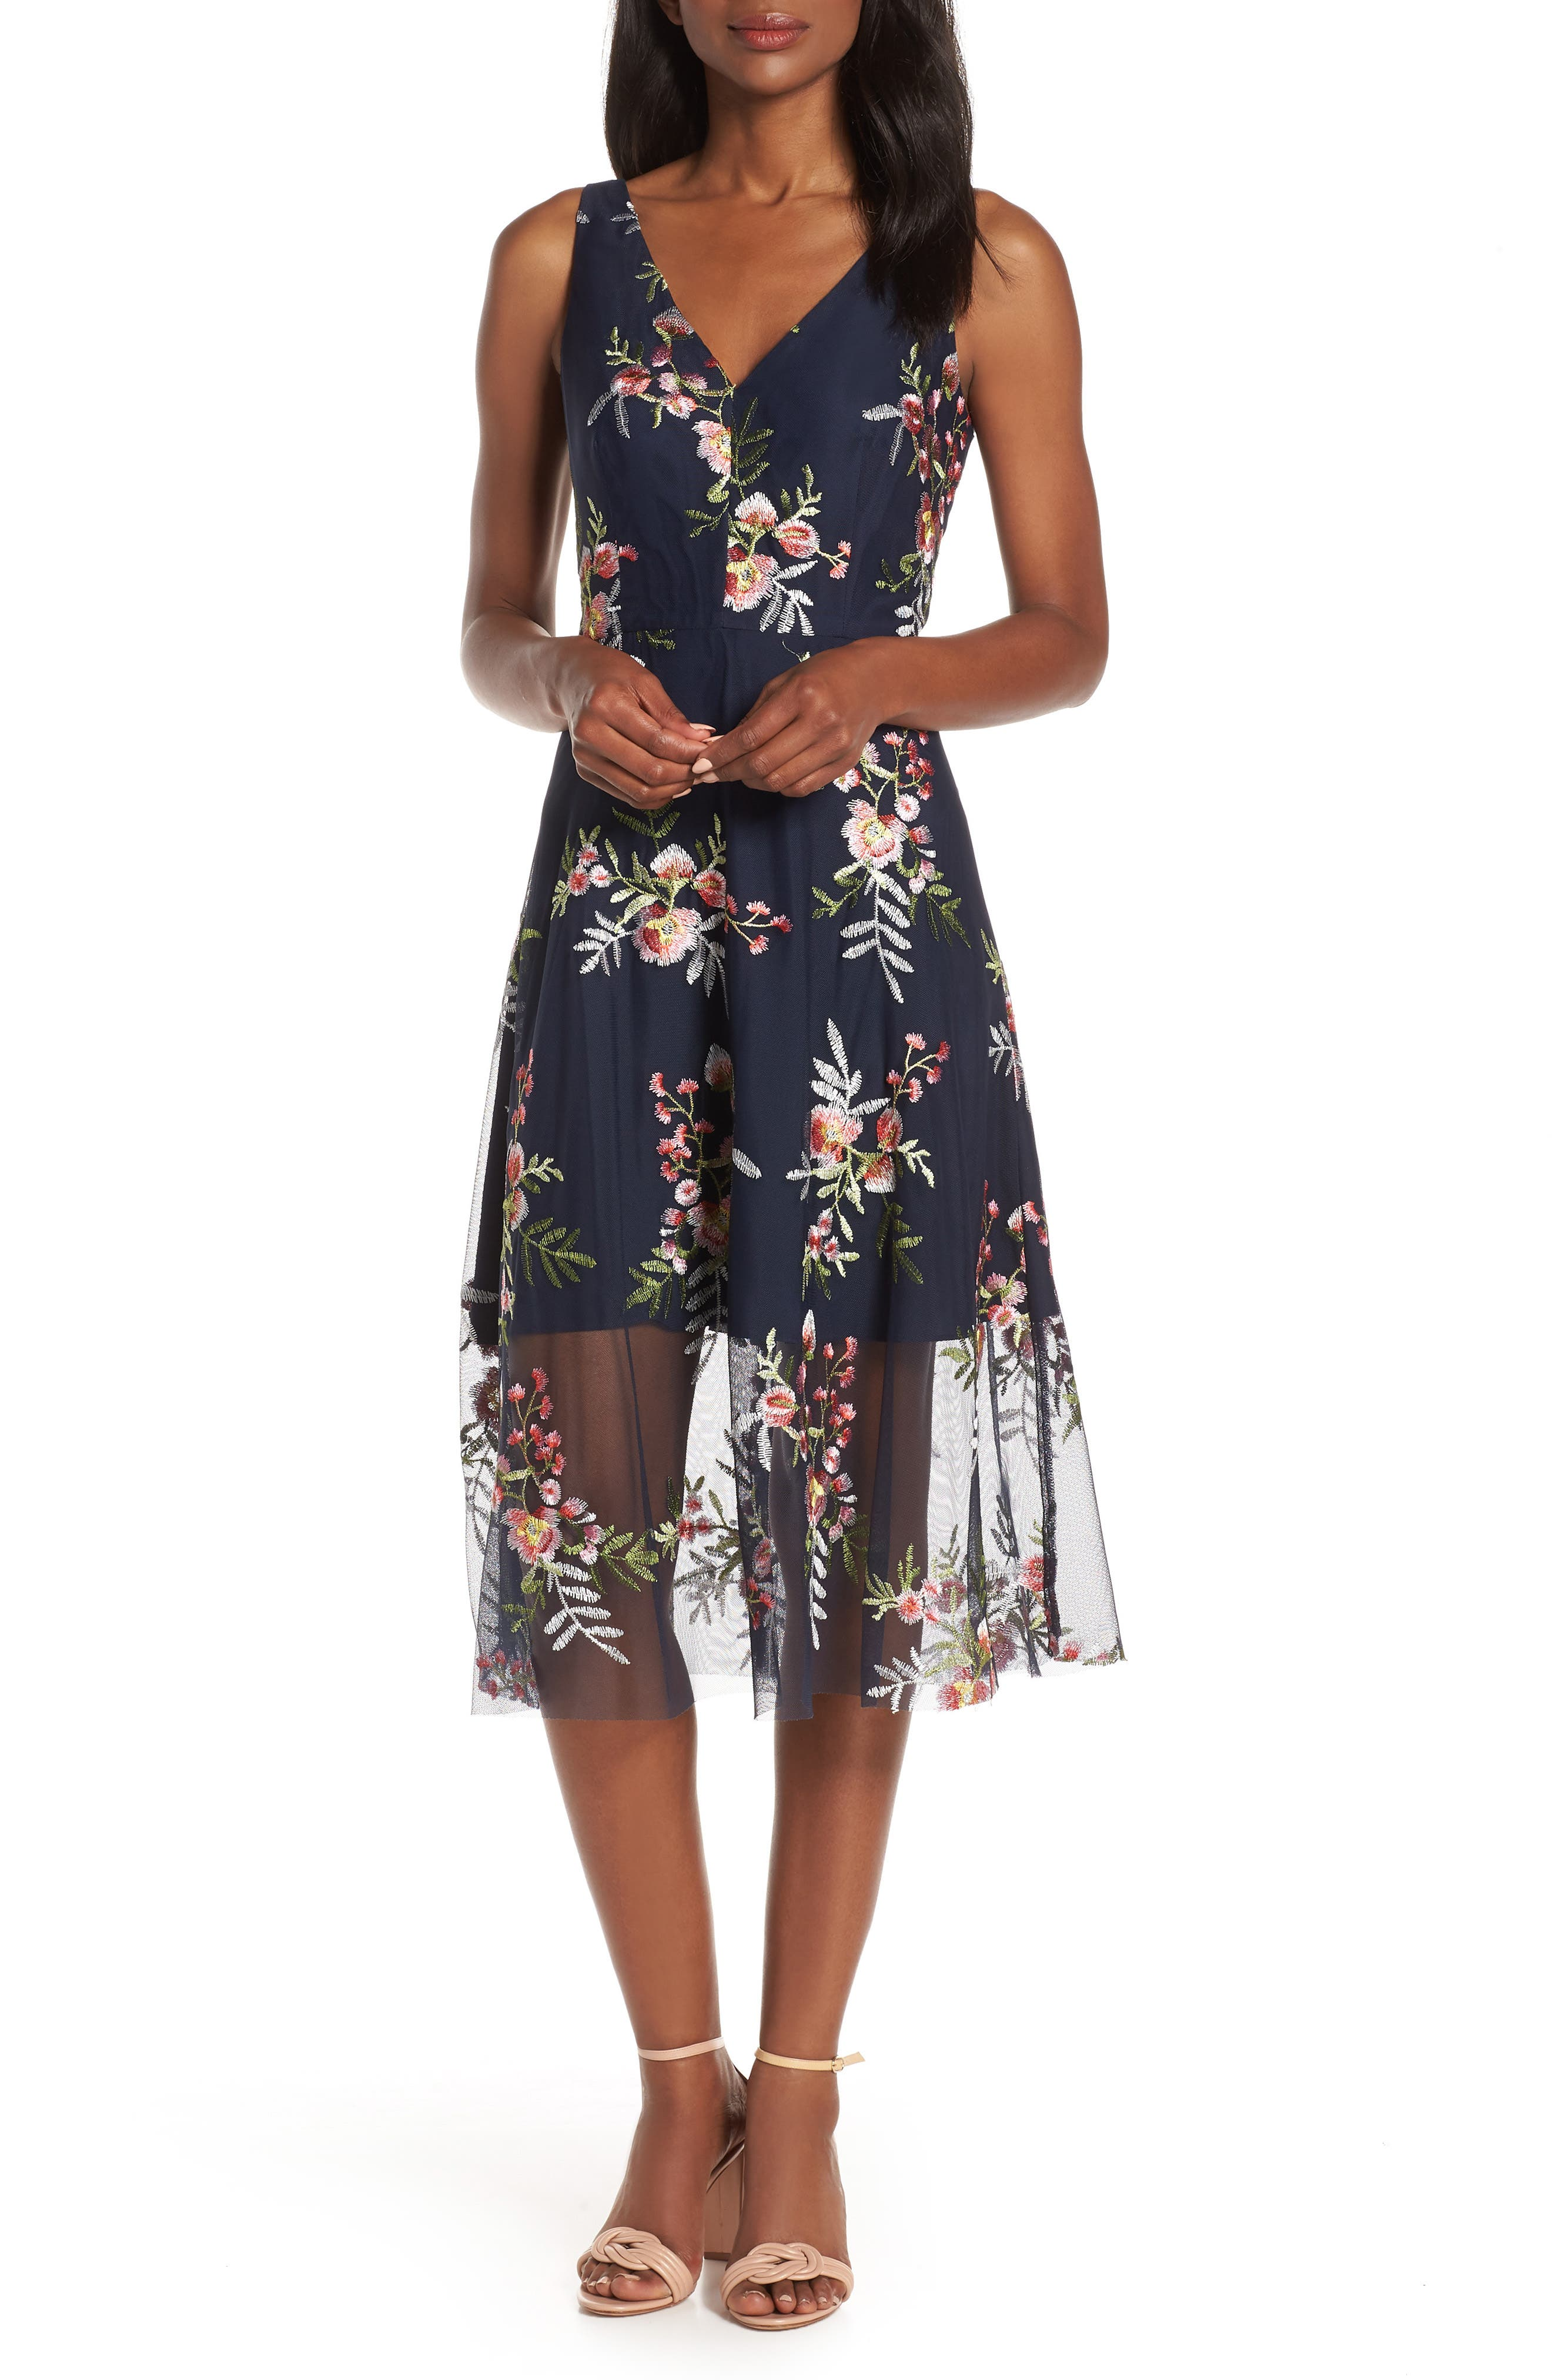 VINCE CAMUTO, Floral Embroidered Mesh Midi Dress, Main thumbnail 1, color, NAVY/ MULTI